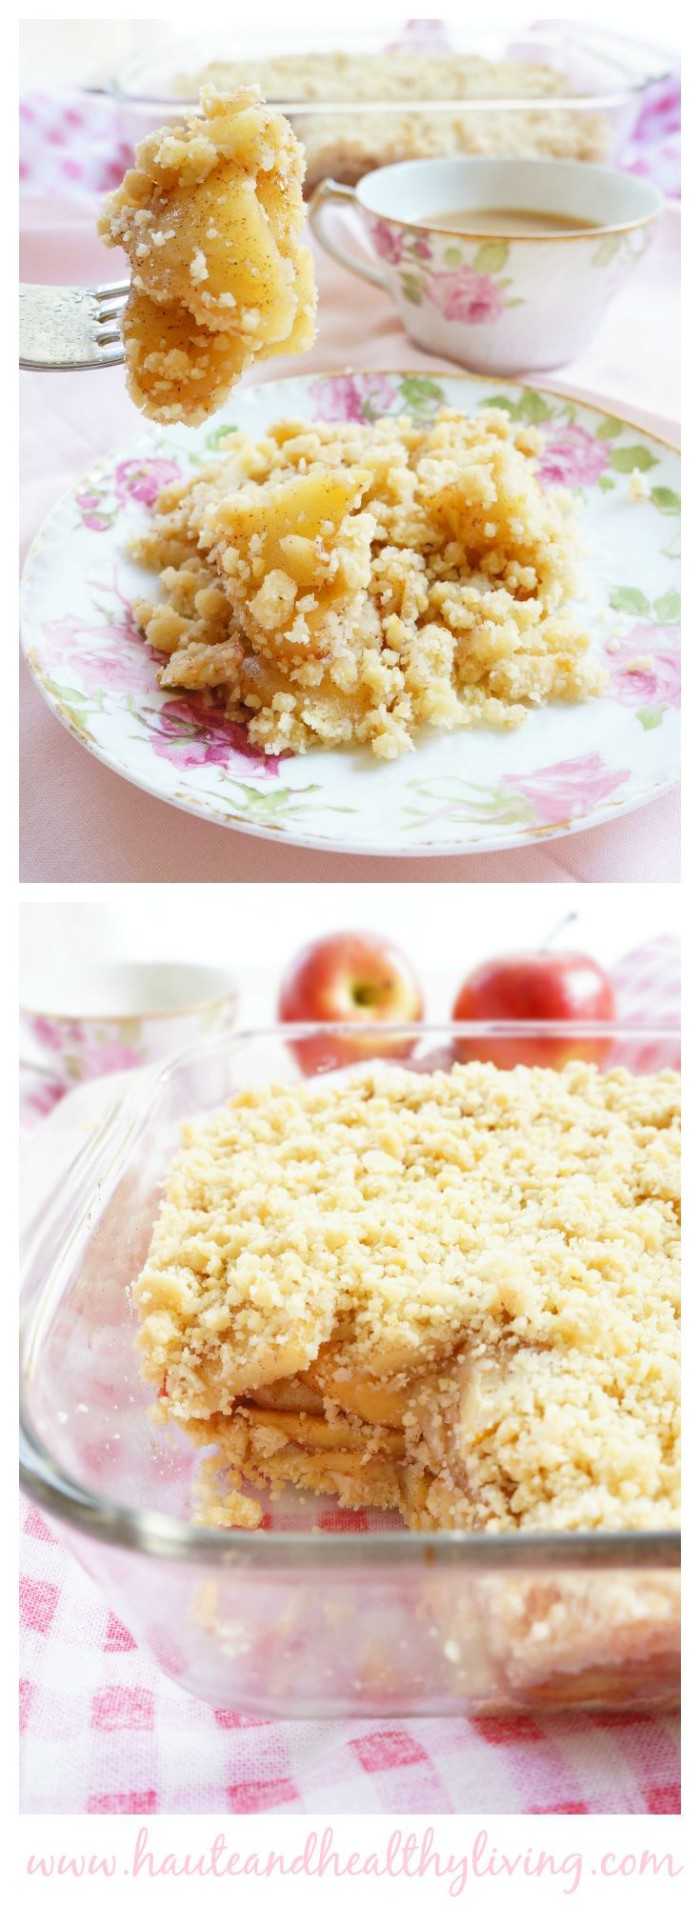 No-Bake Apple Crumble | Haute & Healthy Living